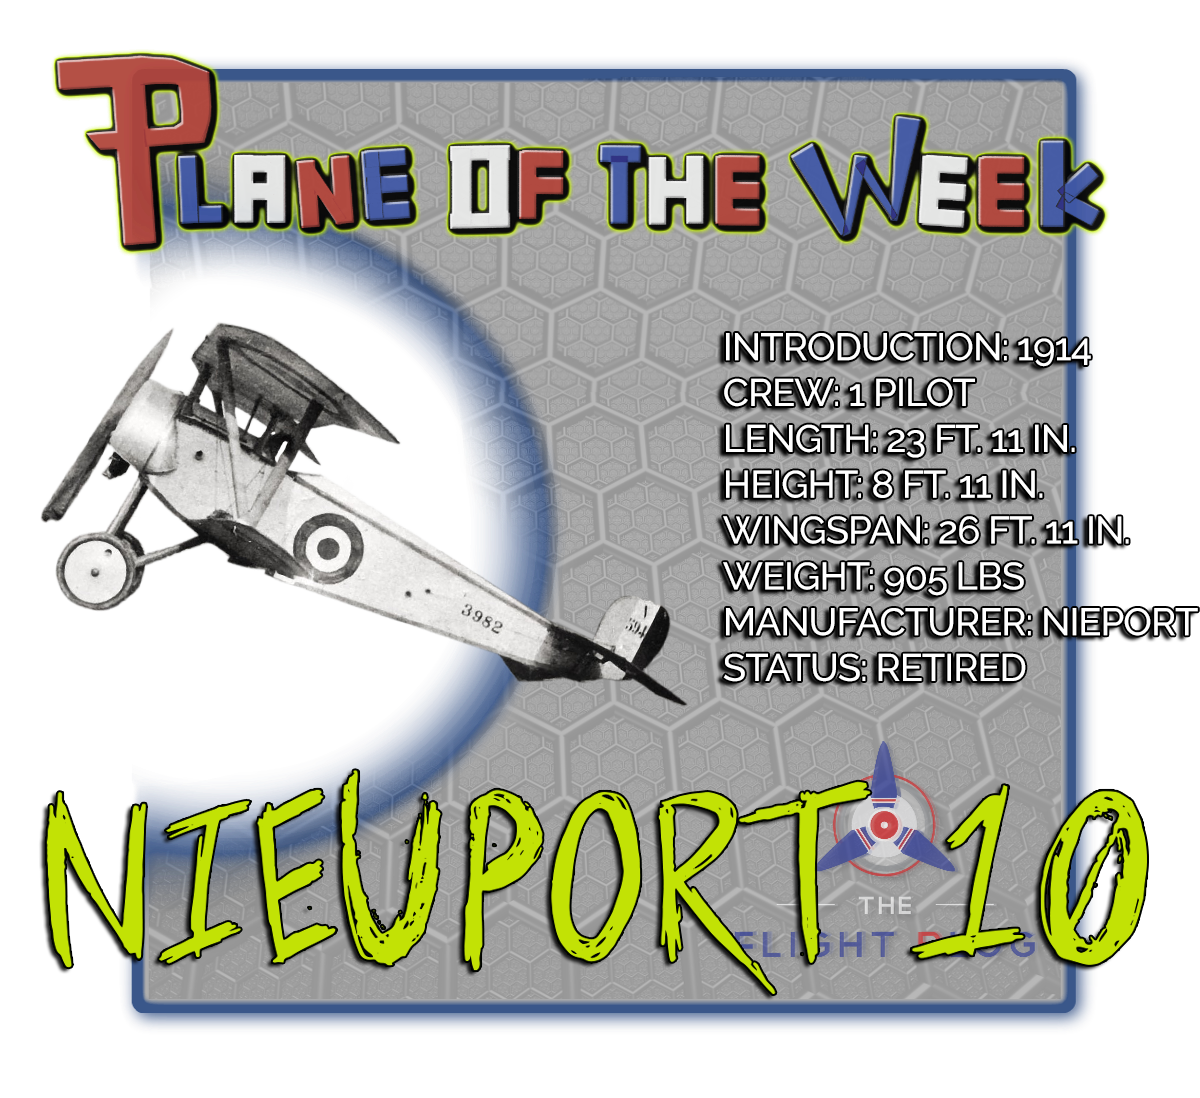 plane of the week, the flight blog, nieuport 10, wwI aircraft, reconnaissance plane